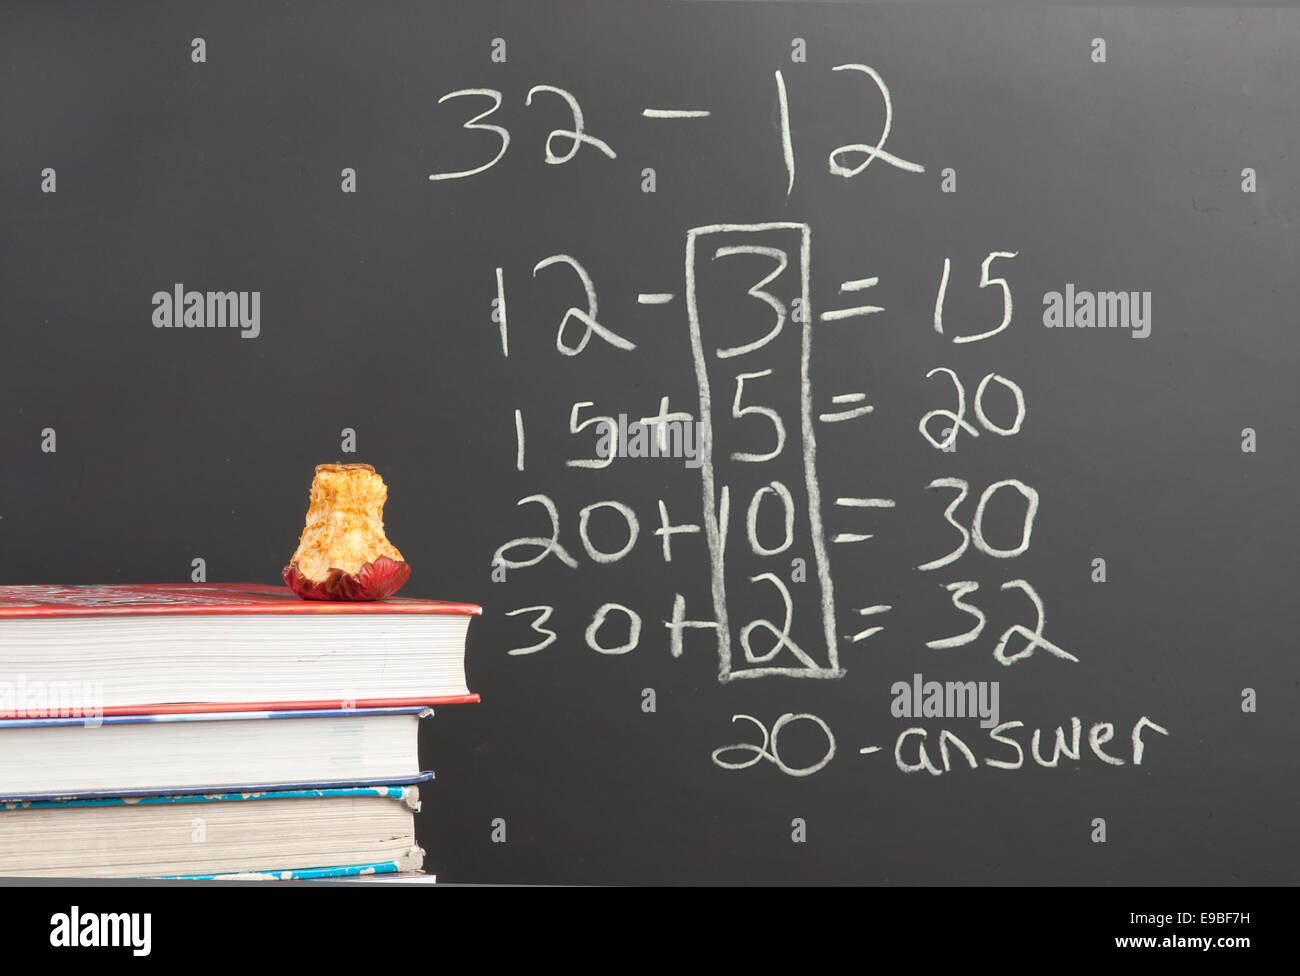 Common Core new math. - Stock Image